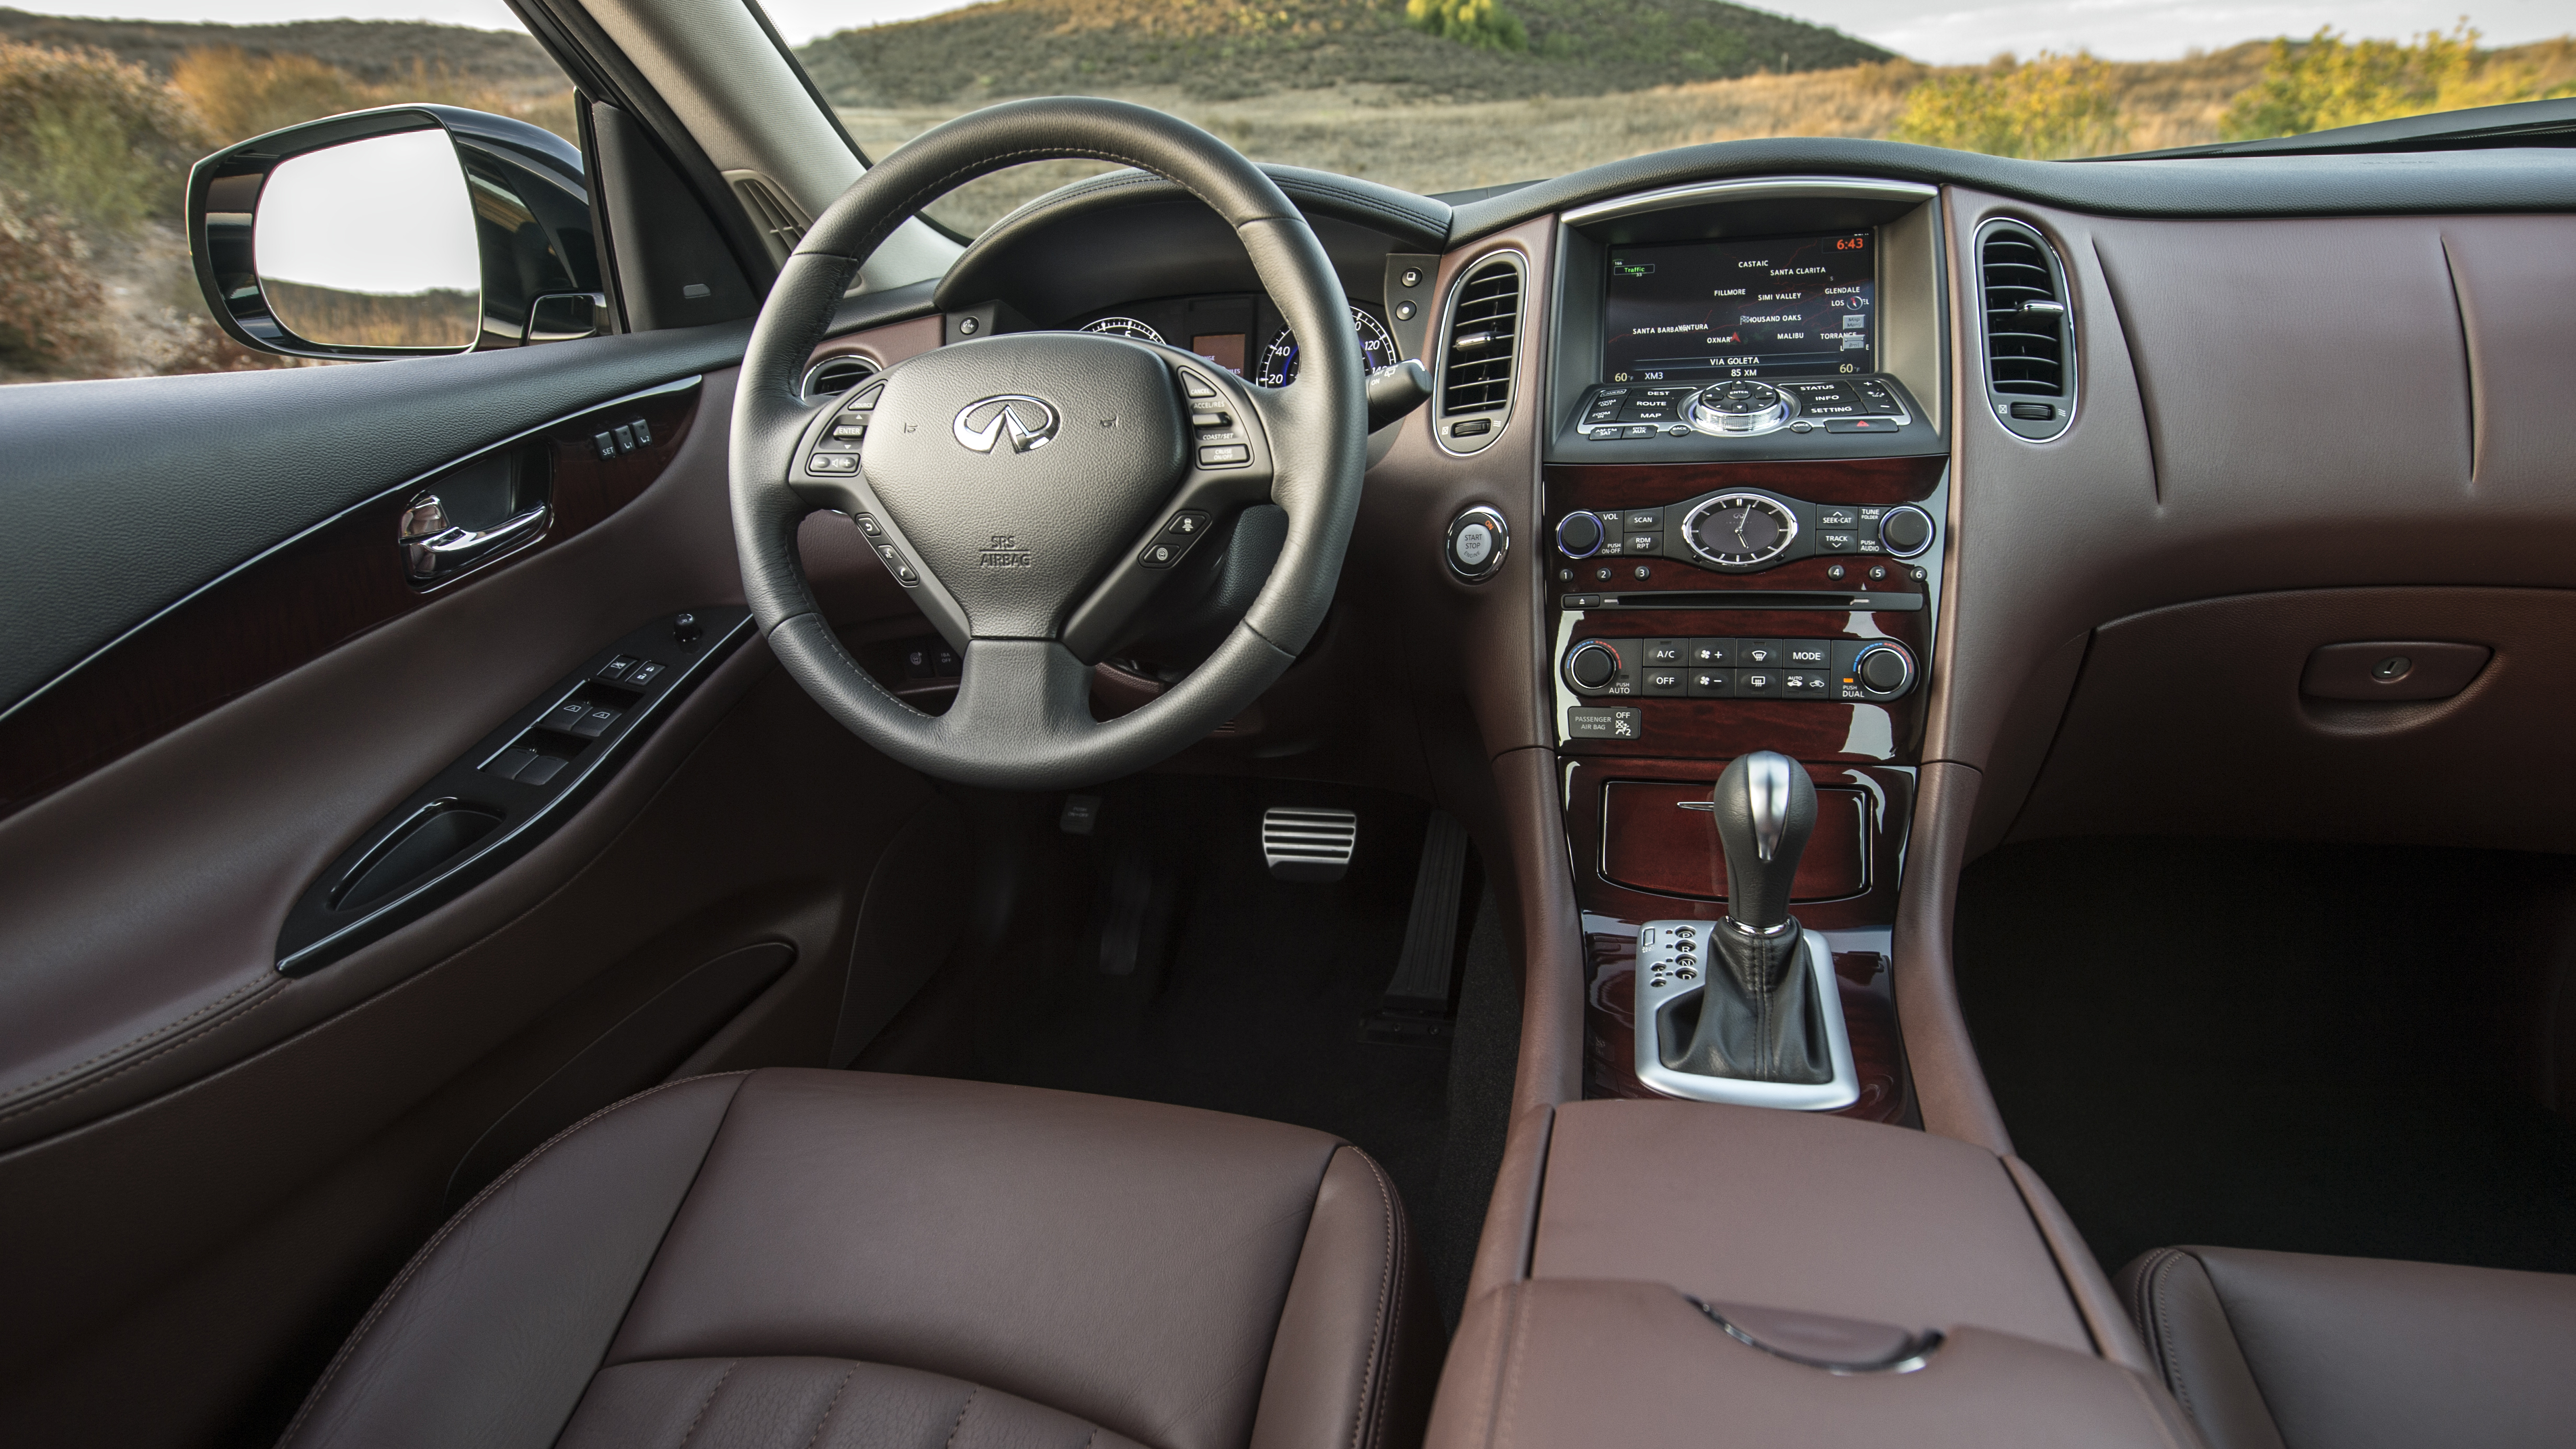 picture gallery photos money infiniti cars infinity